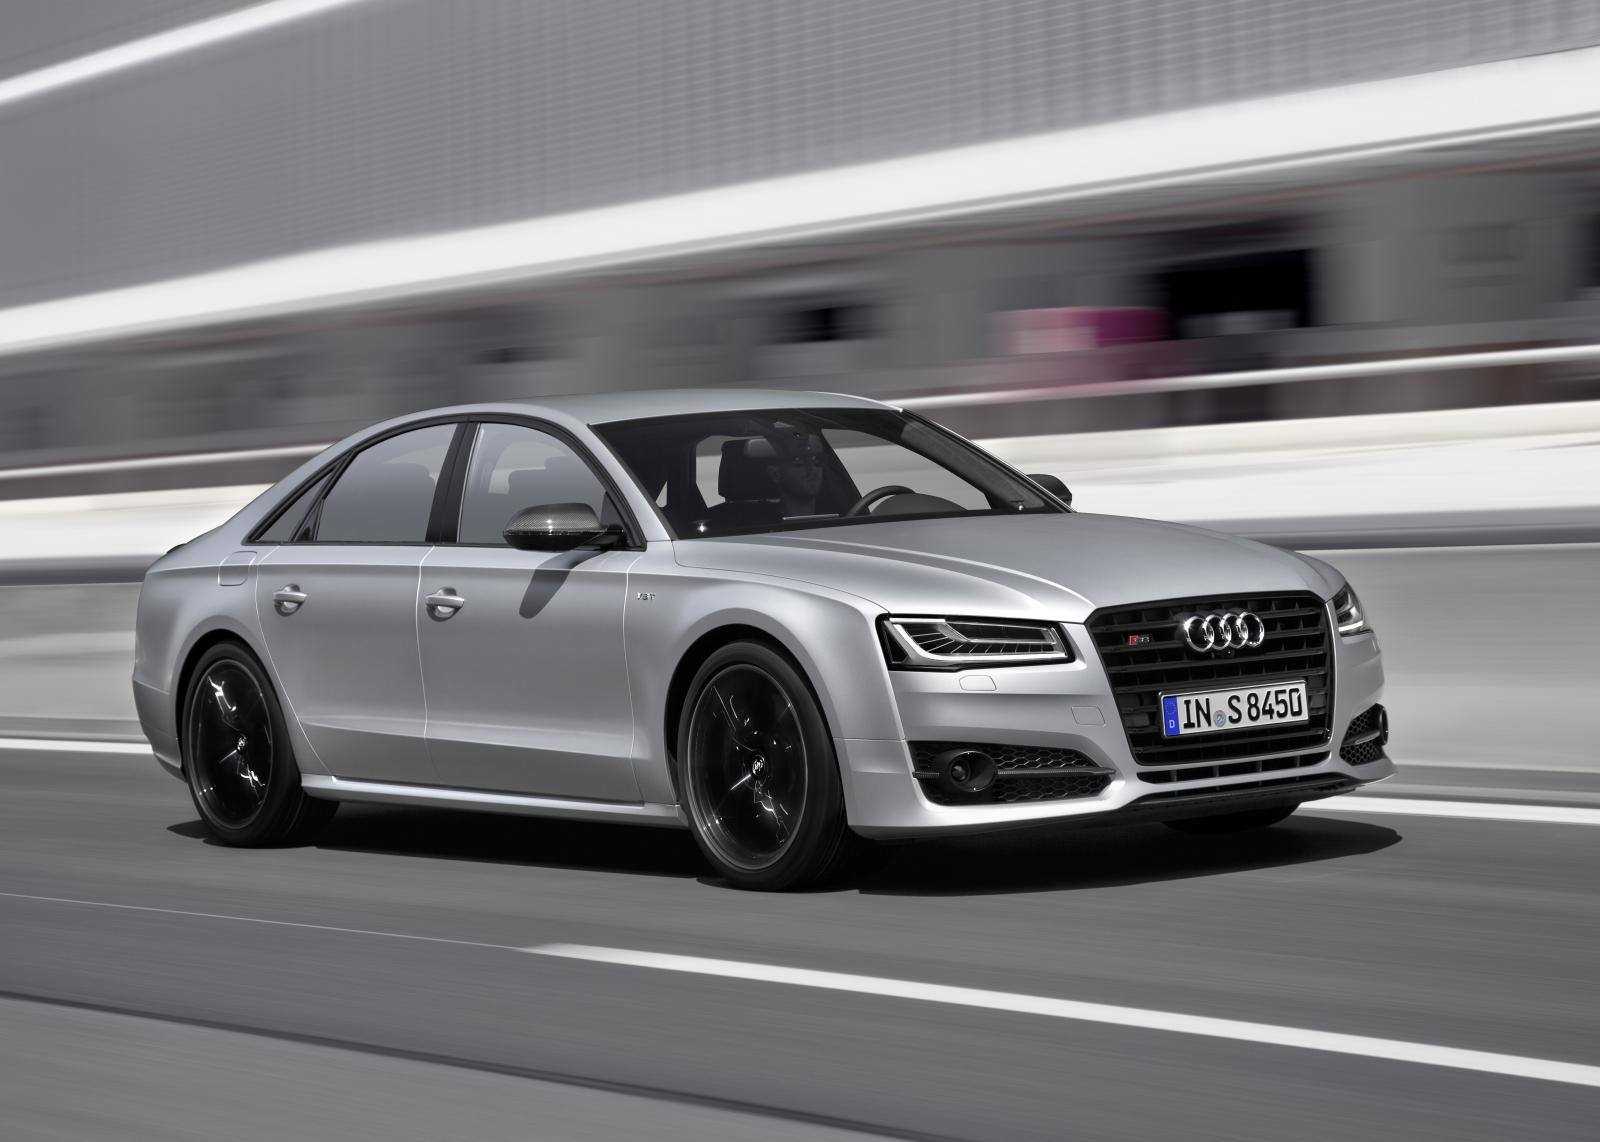 Audi Unveils S8 plus With 605 HP and 305 KM/H Top Speed - autoevolution